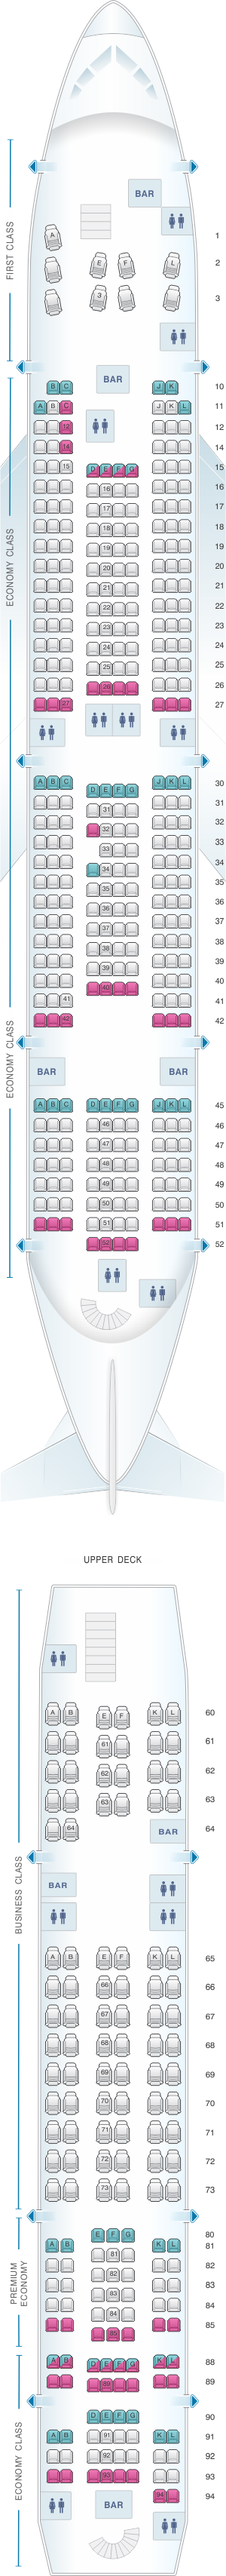 Seat map for Air France Airbus A380 International Long-Haul 516PAX